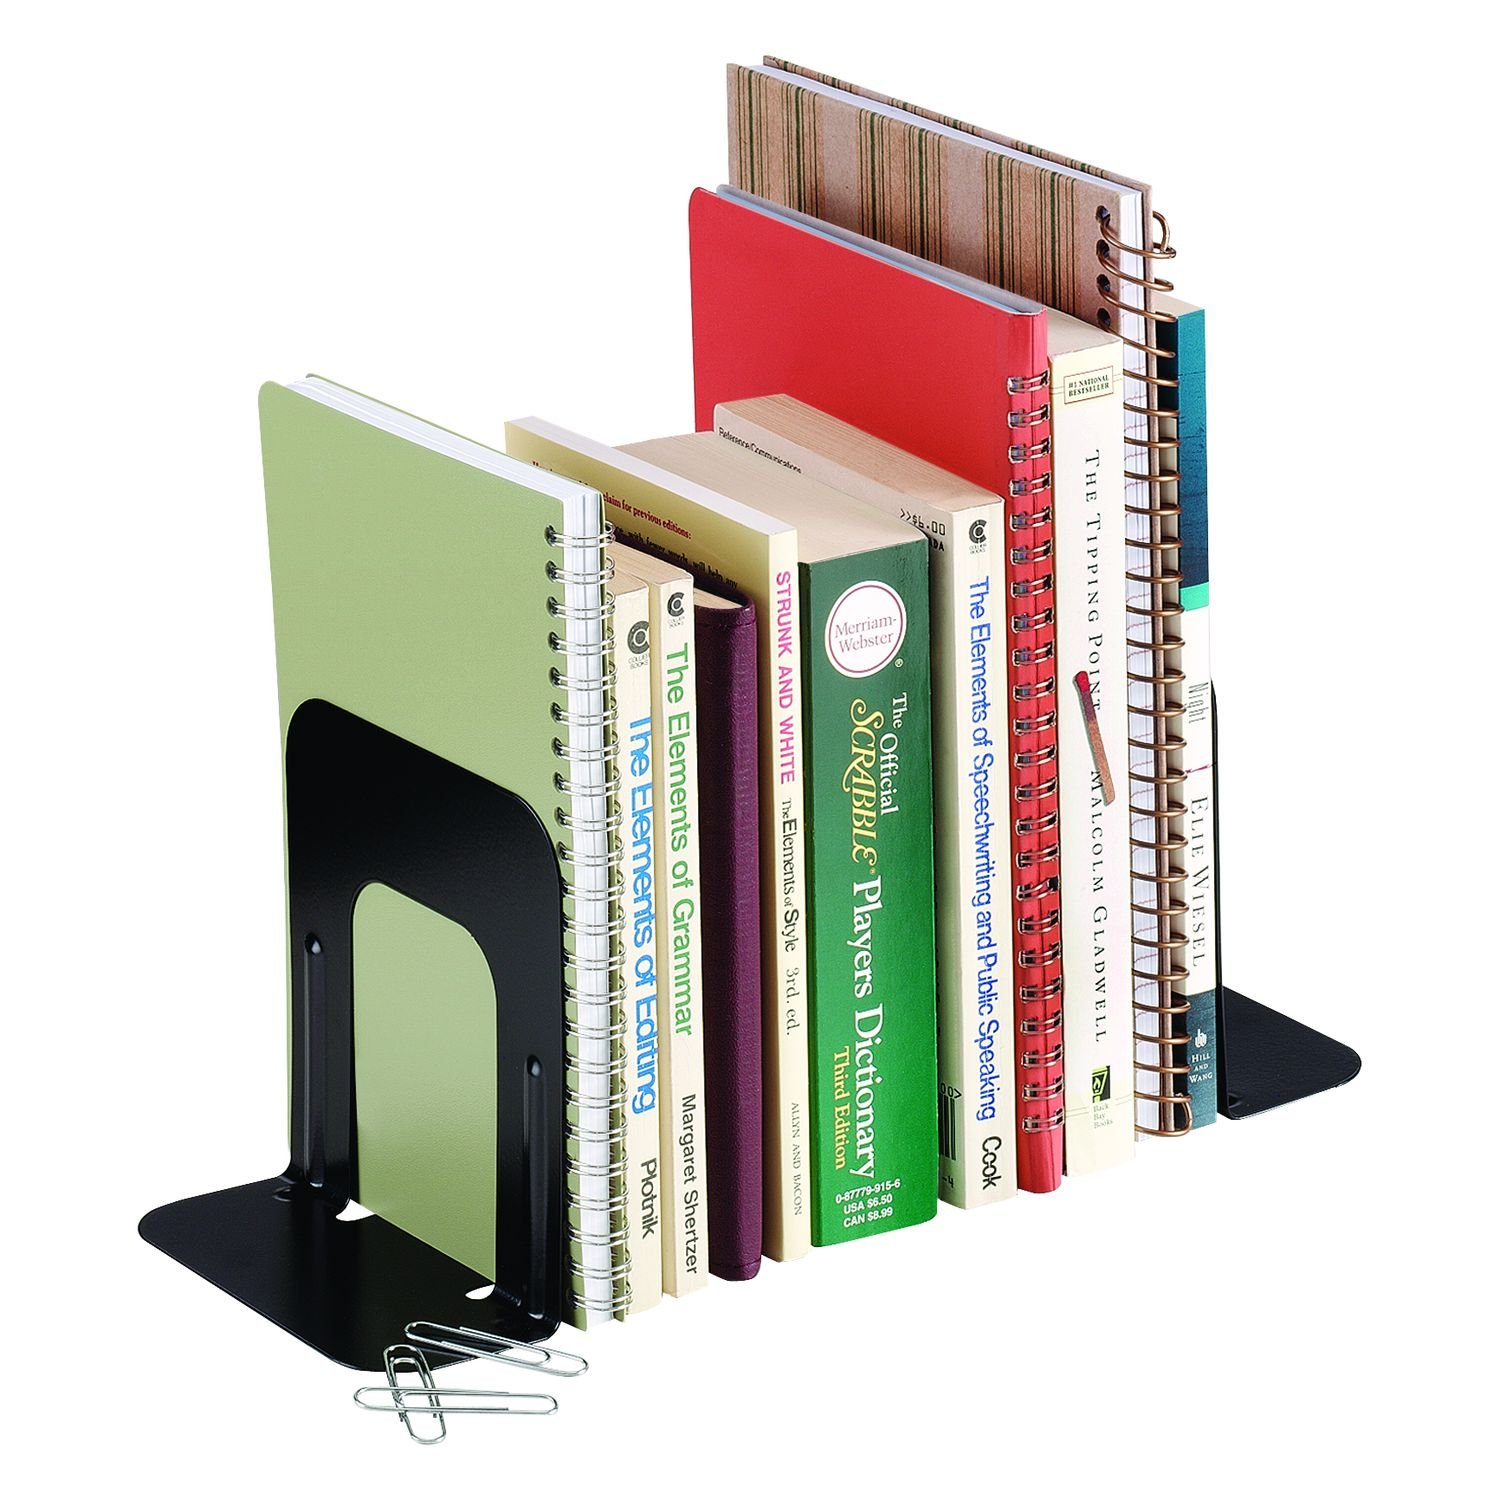 STEELMASTER Economy Steel Bookends, 5 Inch Backs, 1 Pair, 4.69 x 5 x 5.25 Inches, Black (241005004)